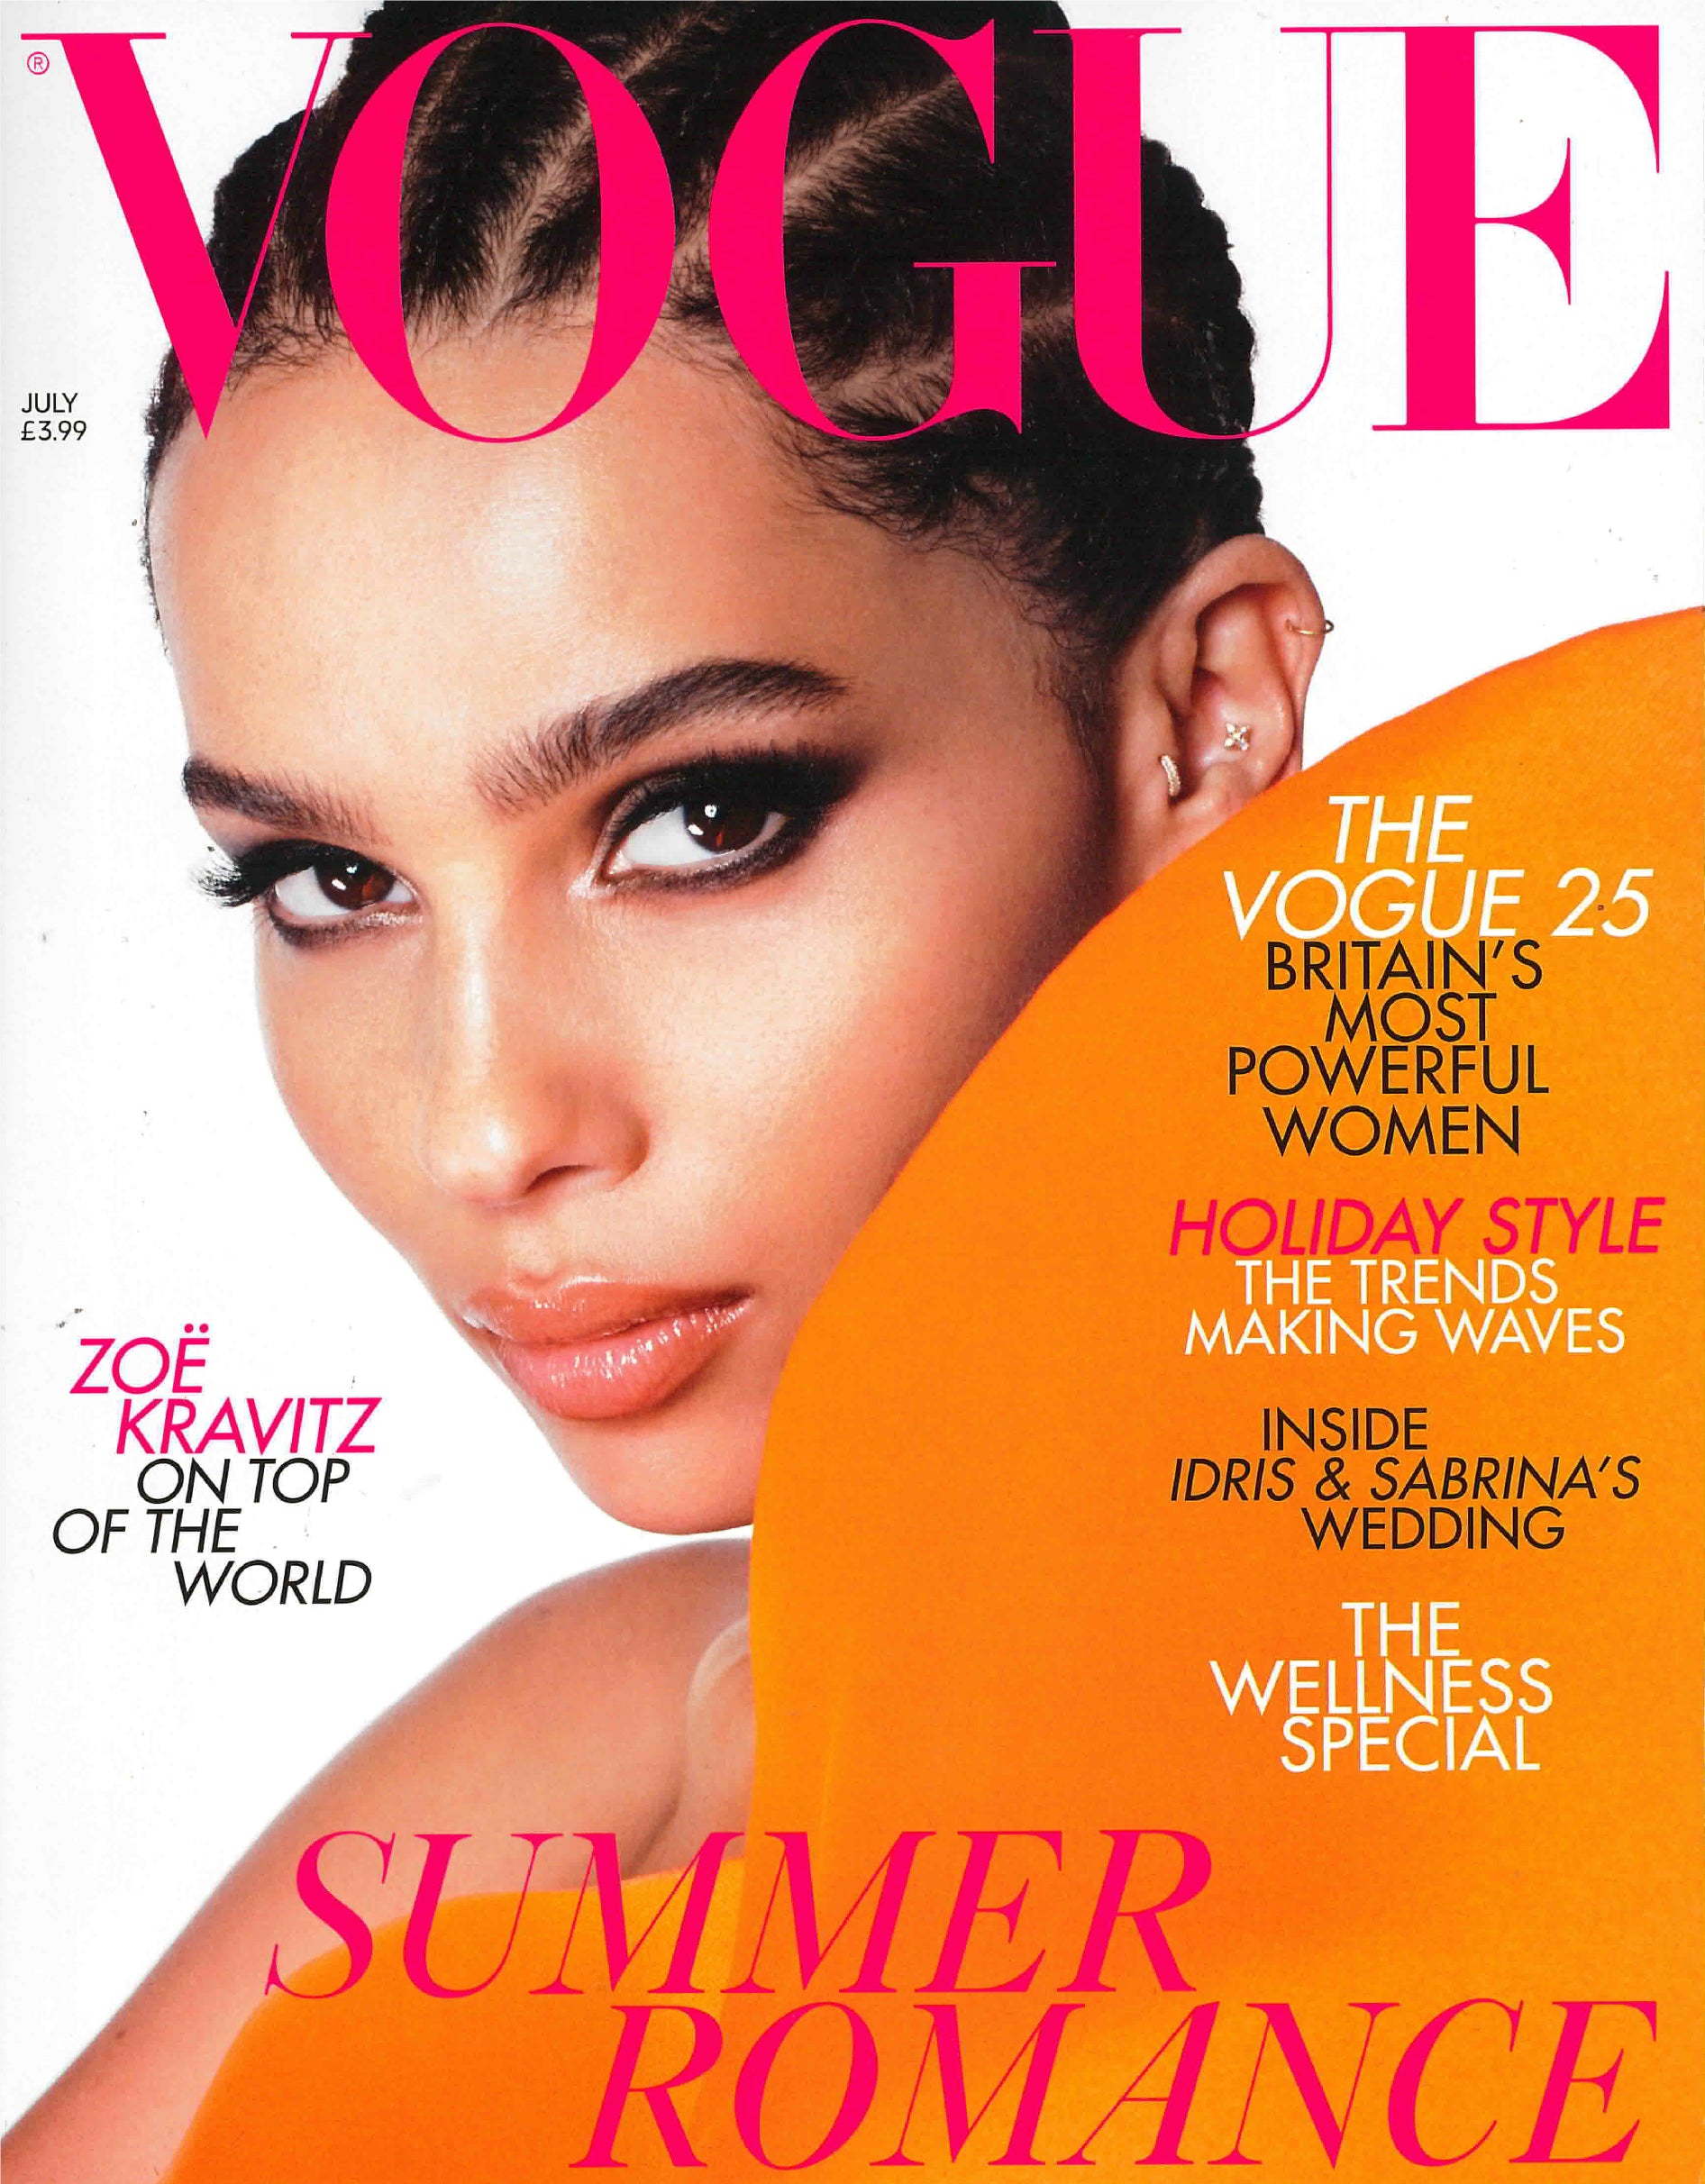 ZOE KRAVITZ ON THE TOP OF THE WORLD VOGUE MAGAZINE FEATURES LA MARQUEZA HATS